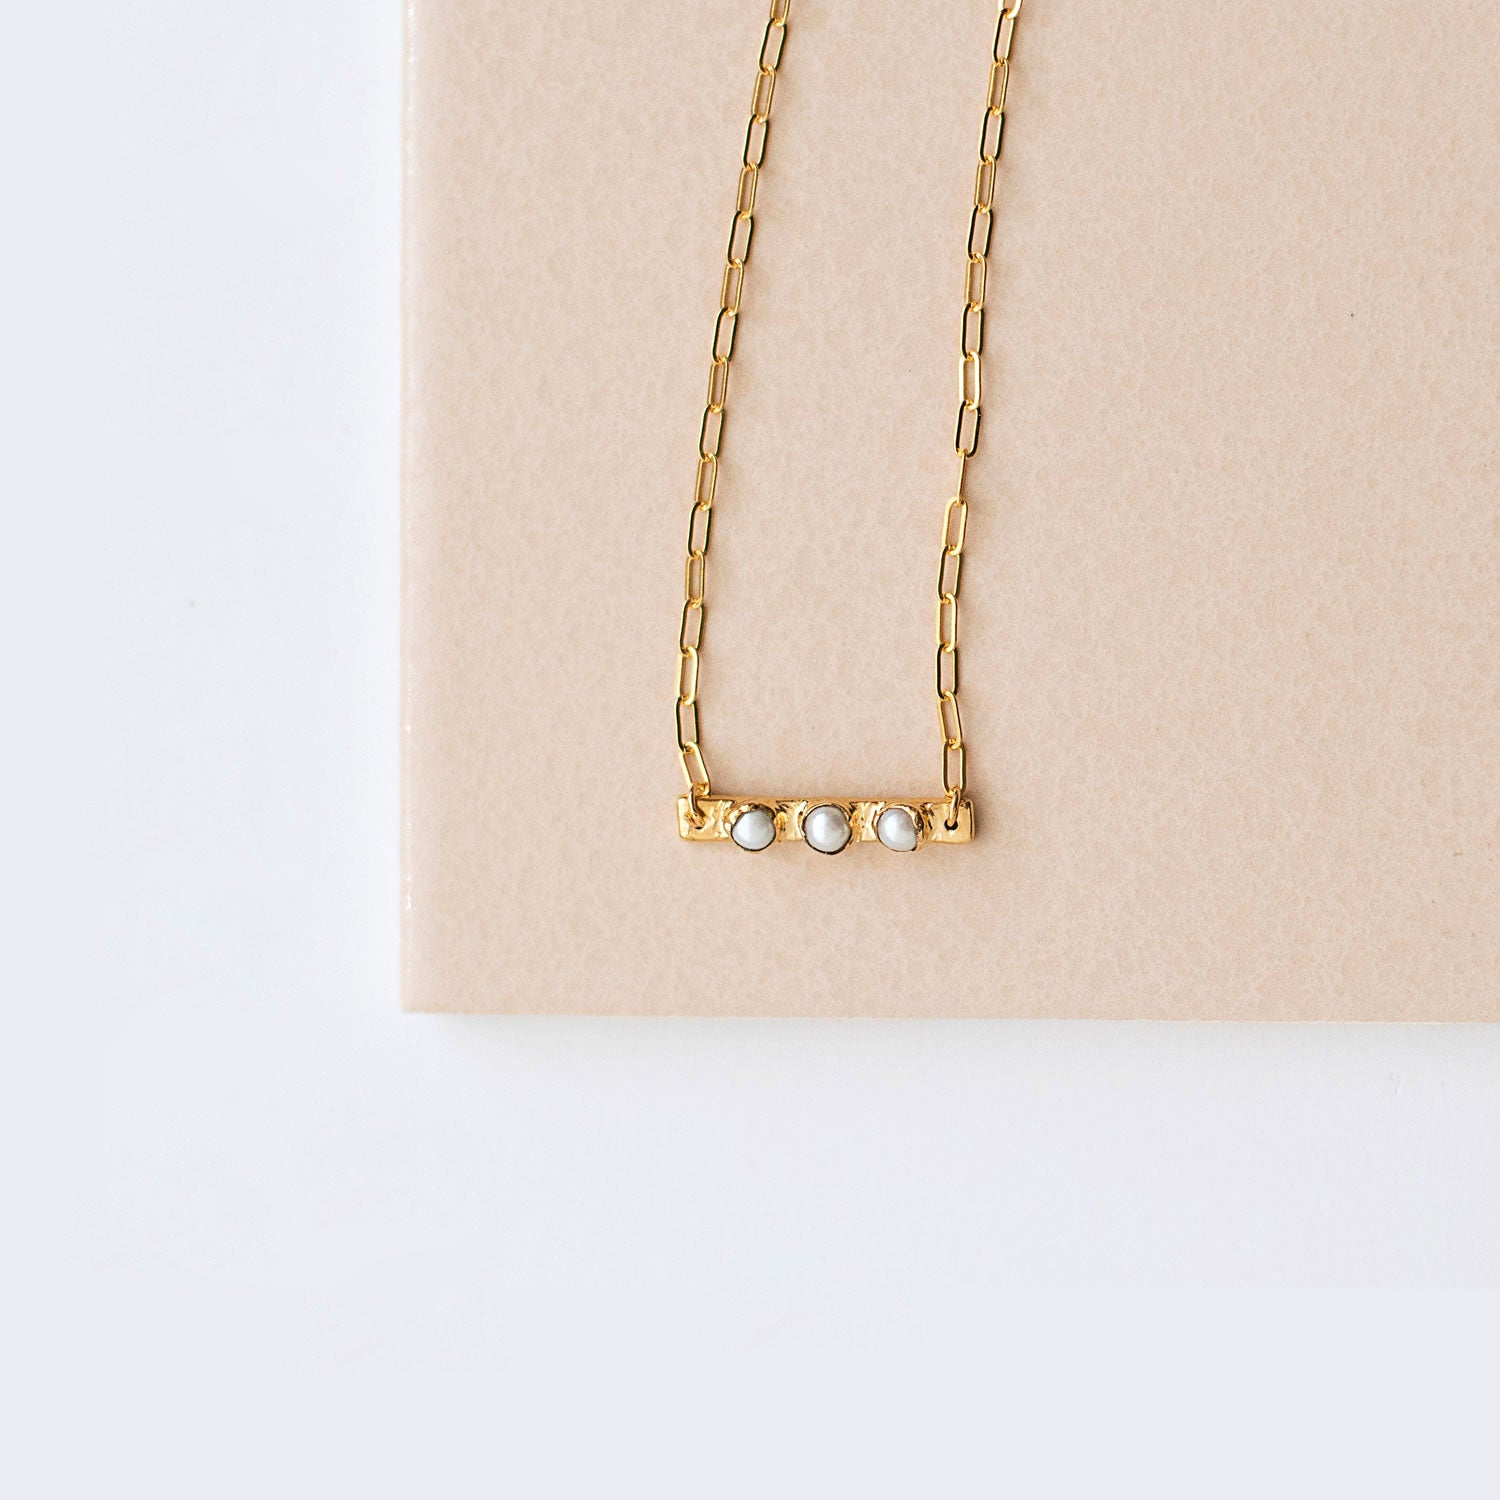 Gemini Birthstone Necklace